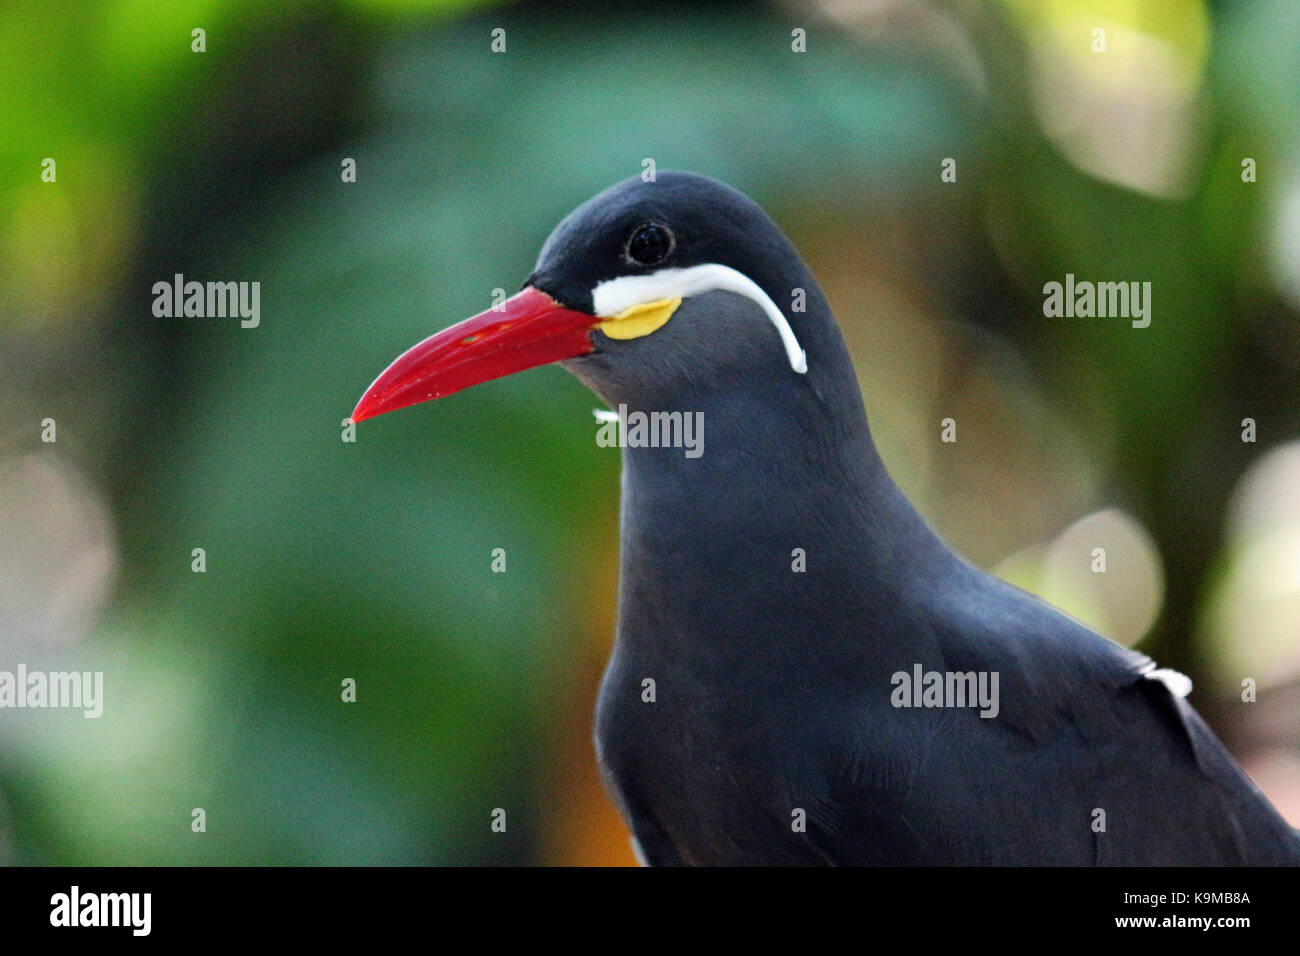 A close up head shot of an Inca Tern Bird native to Peru and Chile with a natural colorful background. Stock Photo